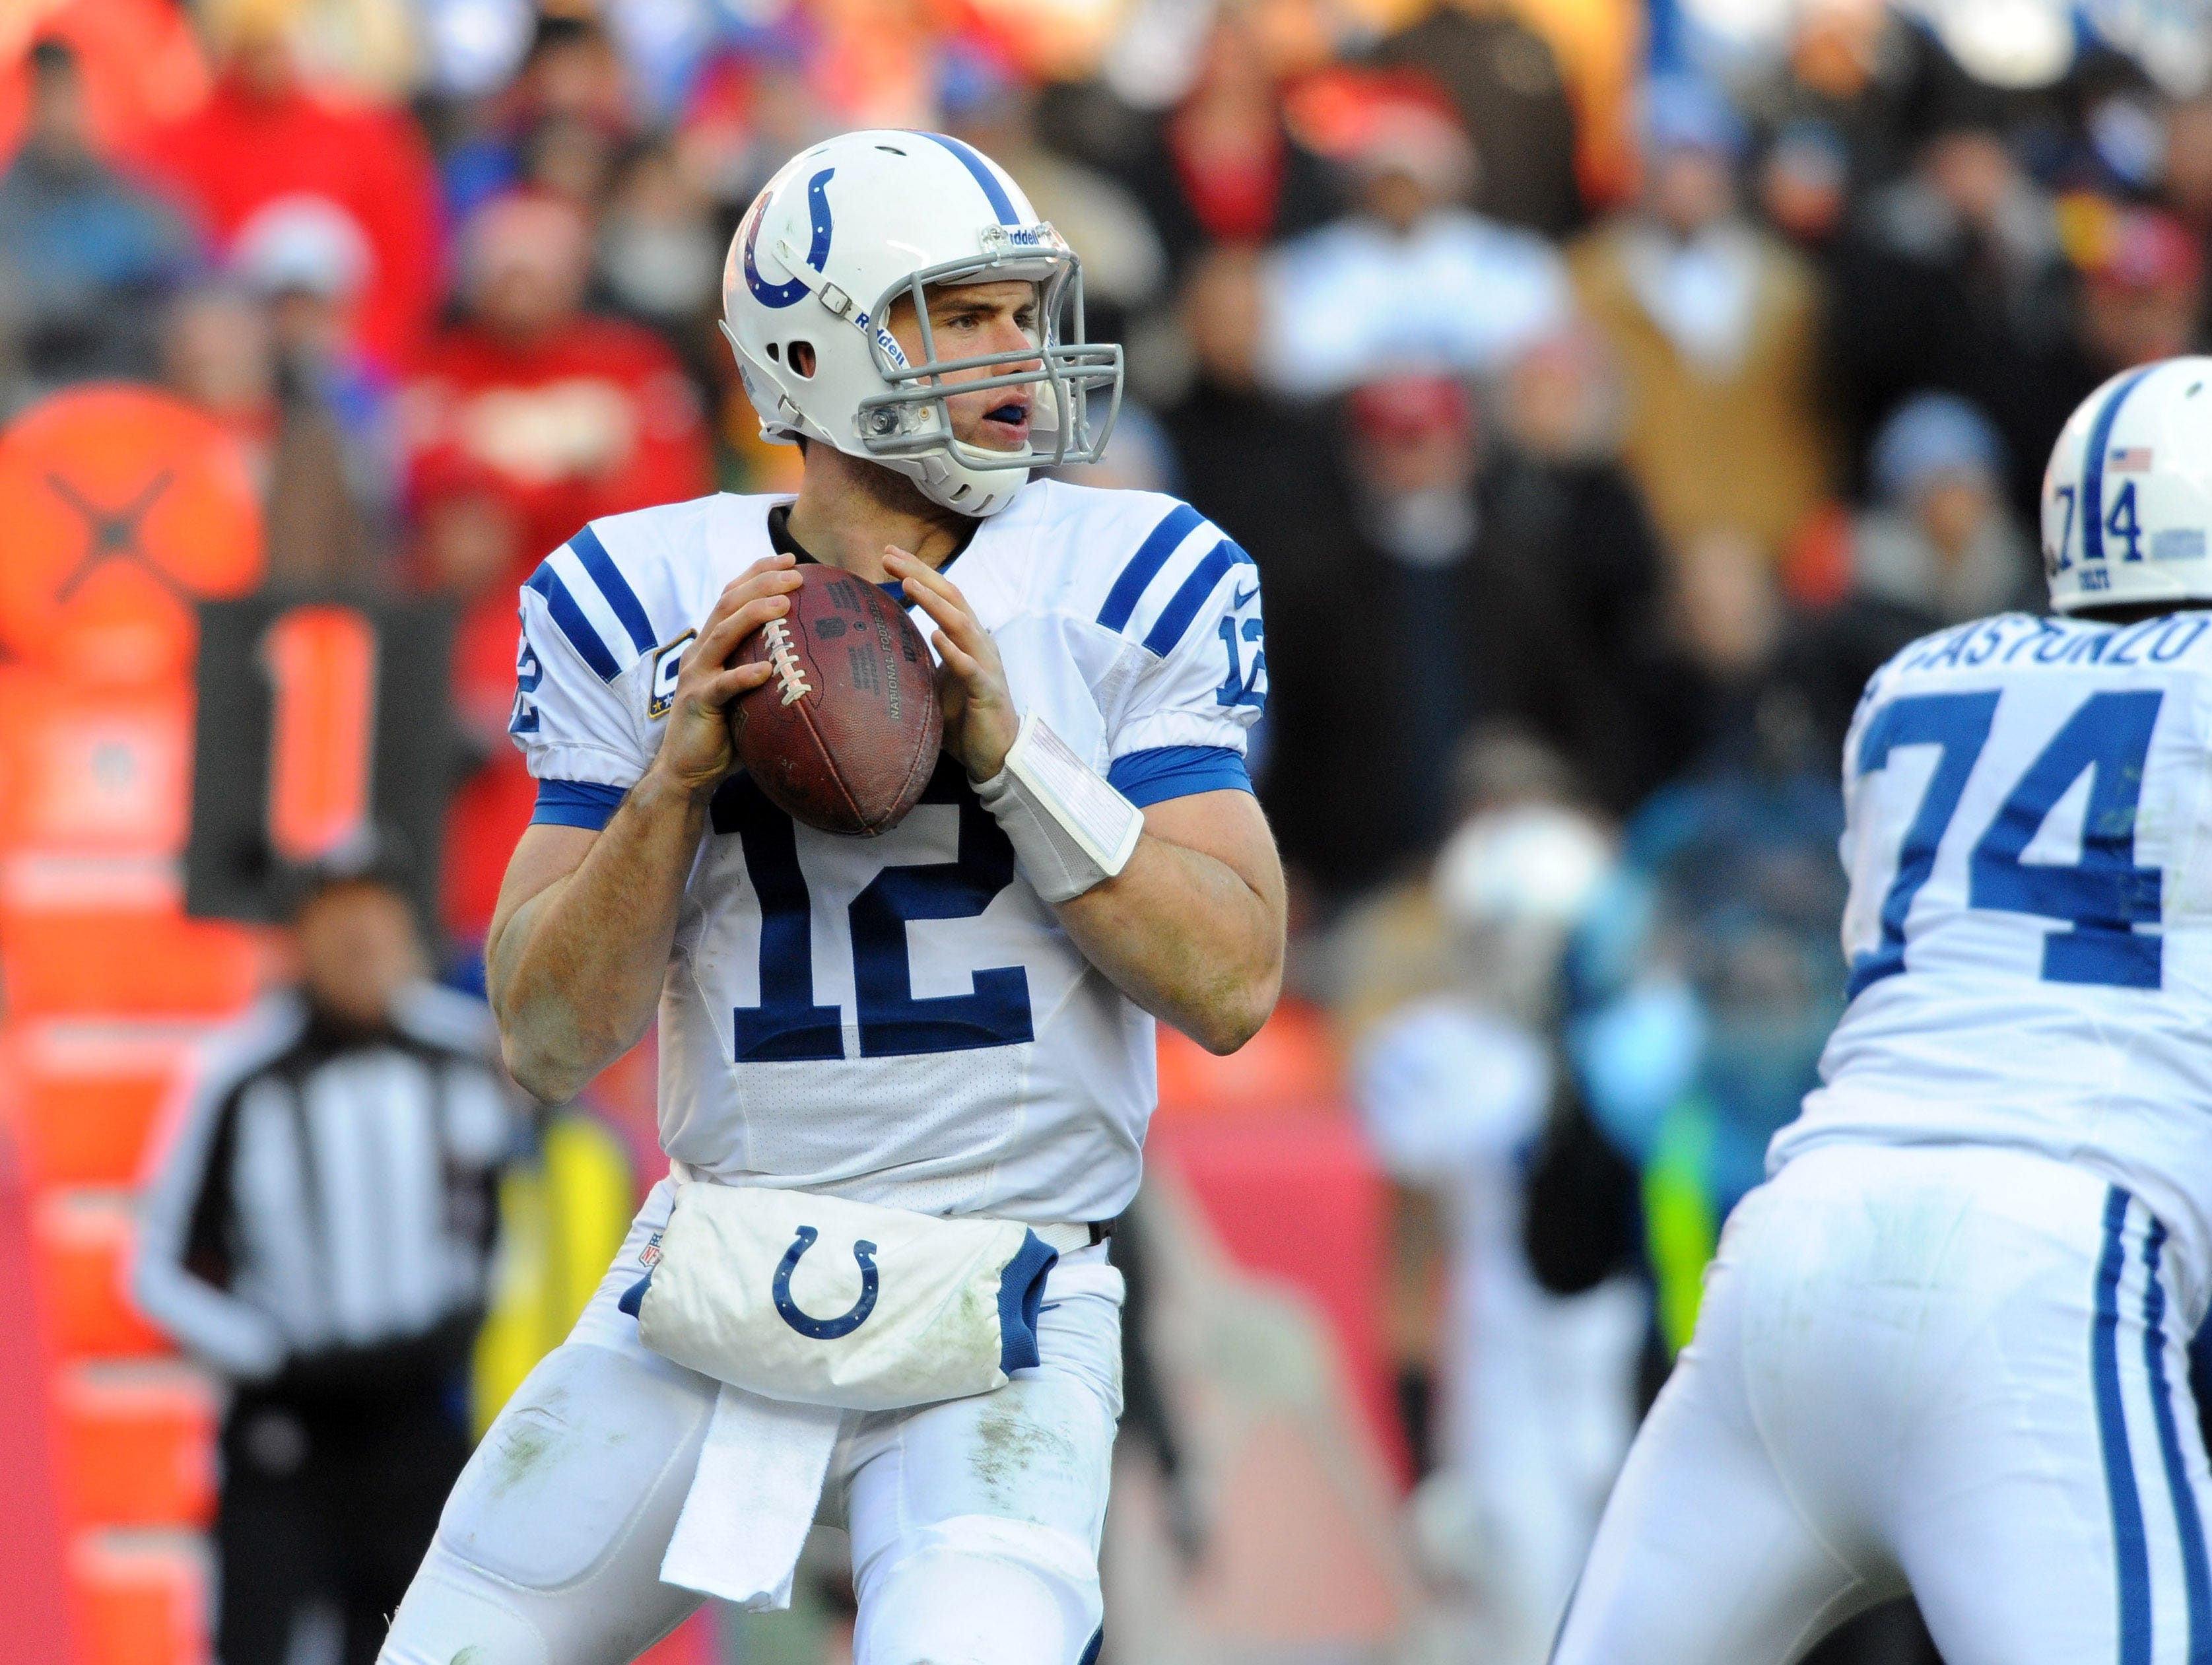 9. Andrew Luck, Indianapolis Colts